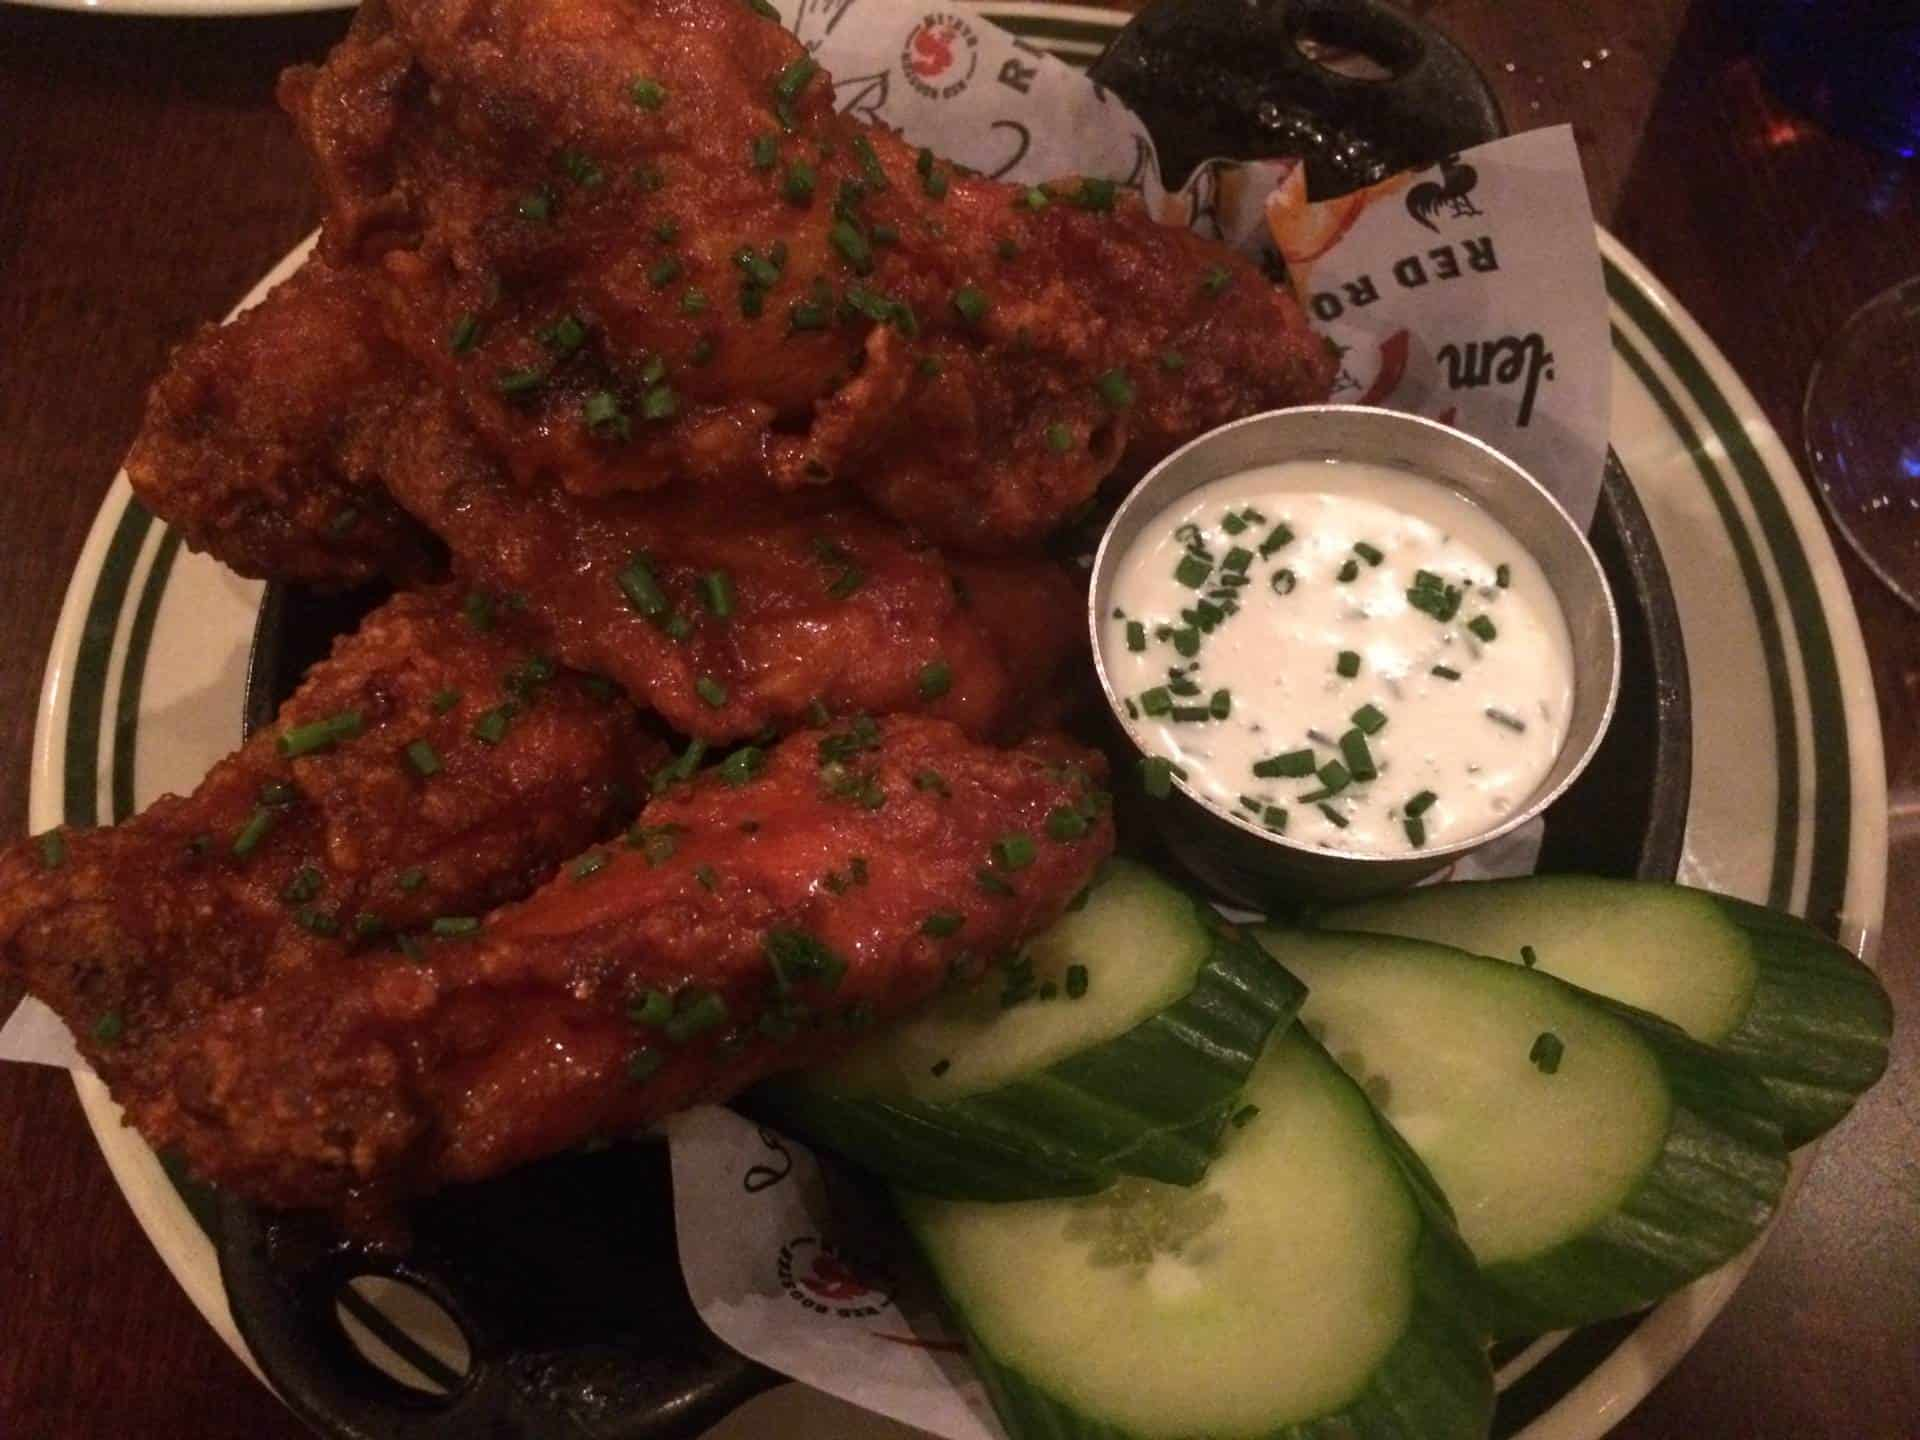 Chicken wings at Red Rooster in Harlem